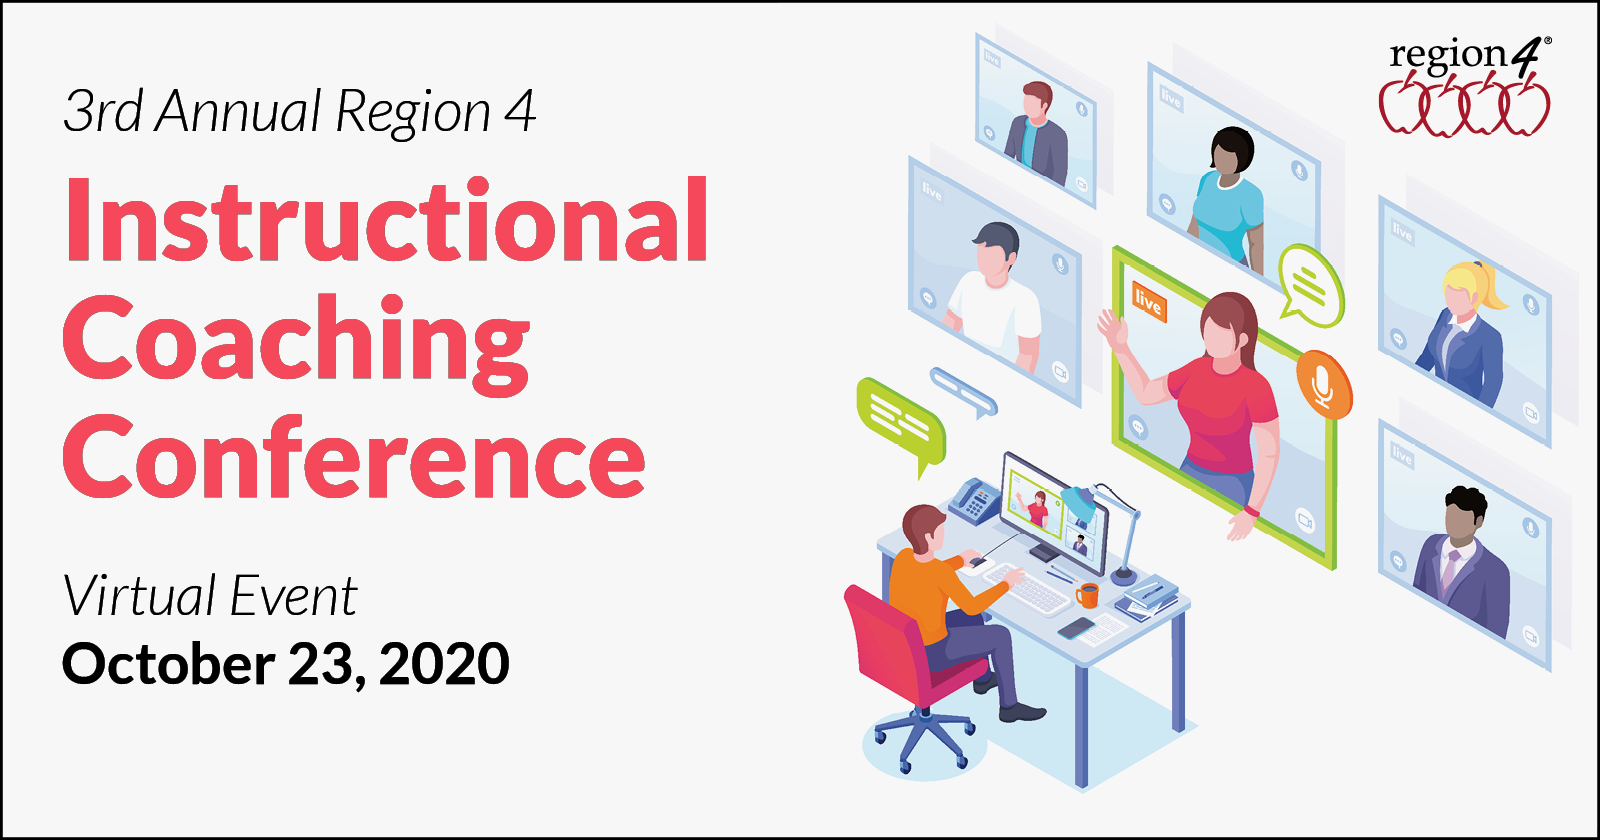 instructional-coaching-conference-2020-email